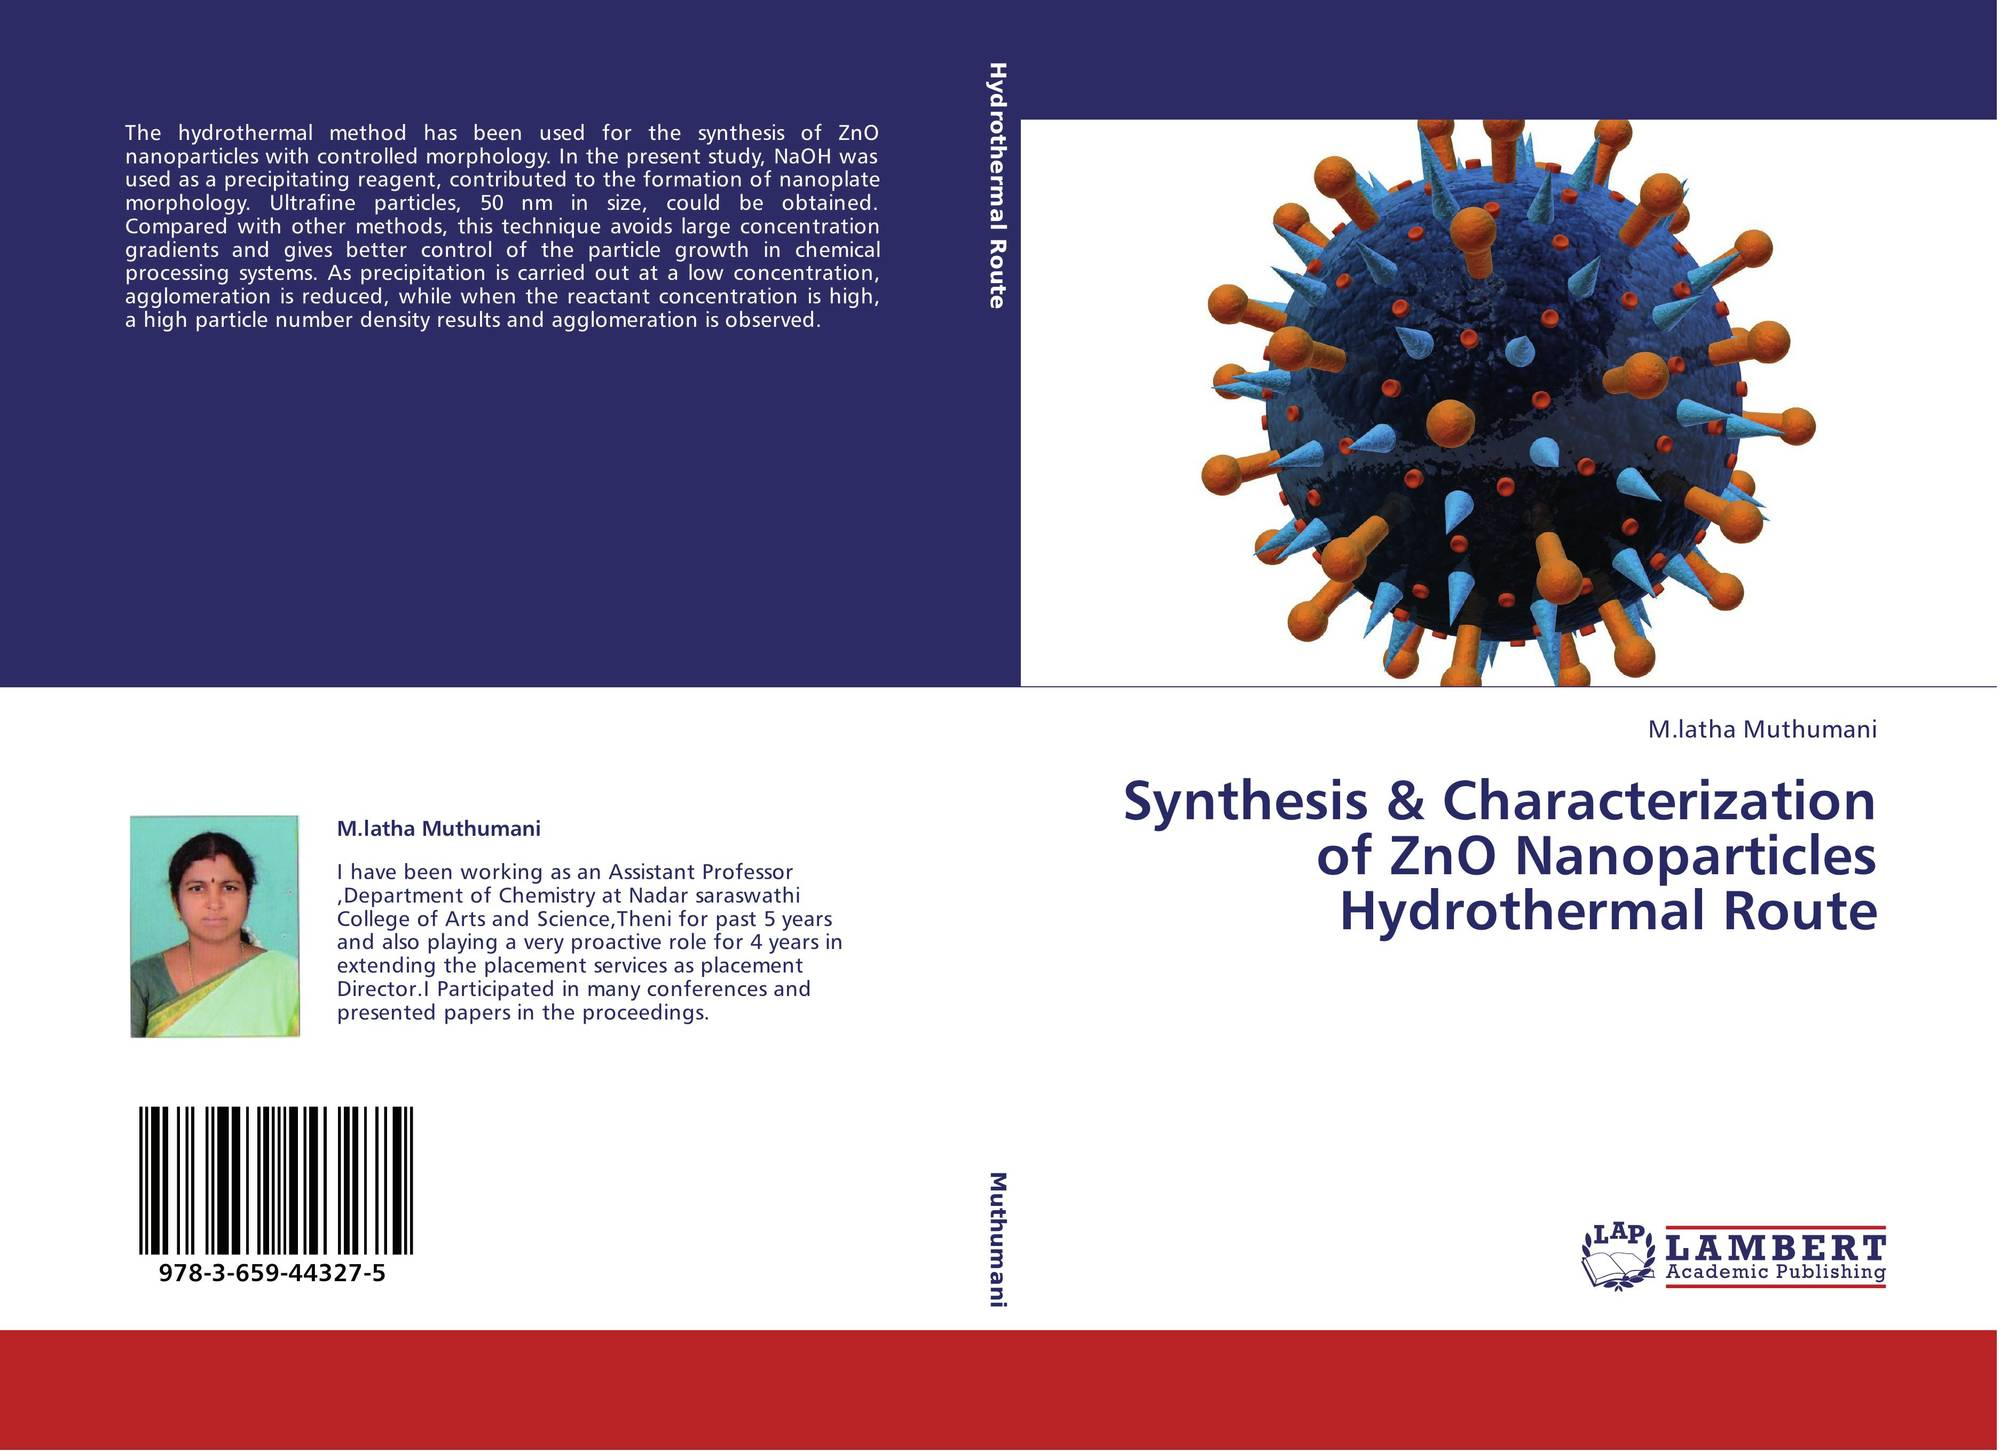 thesis on zno nanoparticles Dissolution and aggregation of zinc oxide nanoparticles at circumneutral ph a study of size effects in a thesis submitted in partial fulfillment.